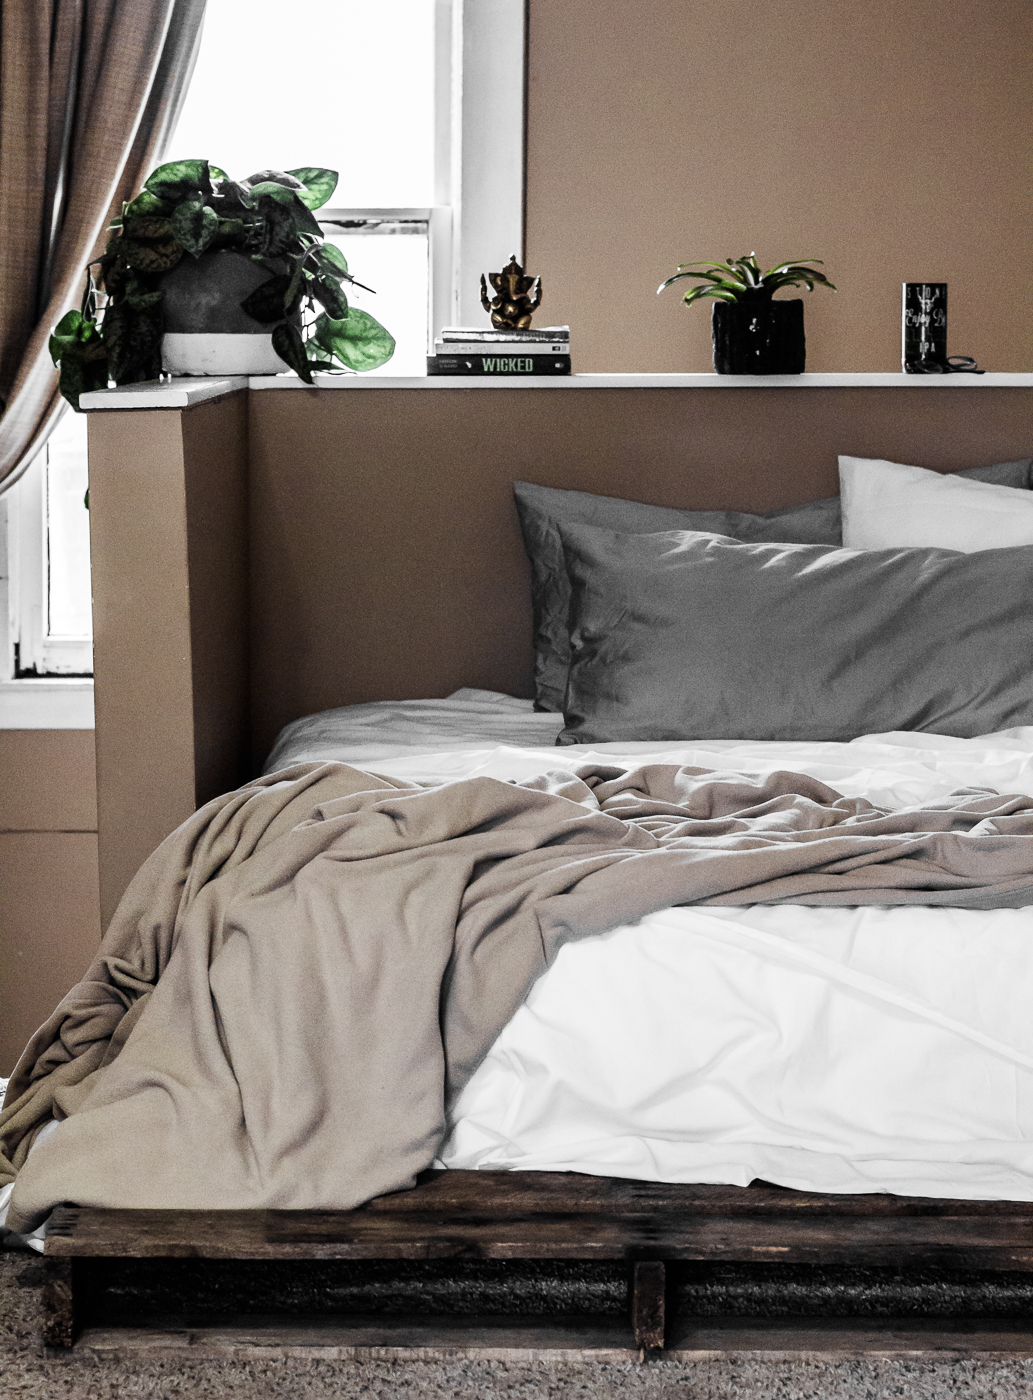 authenticity 50, authenticity 50 bedding, made in america bedding, spring cleaning tips, bedroom spring cleaning